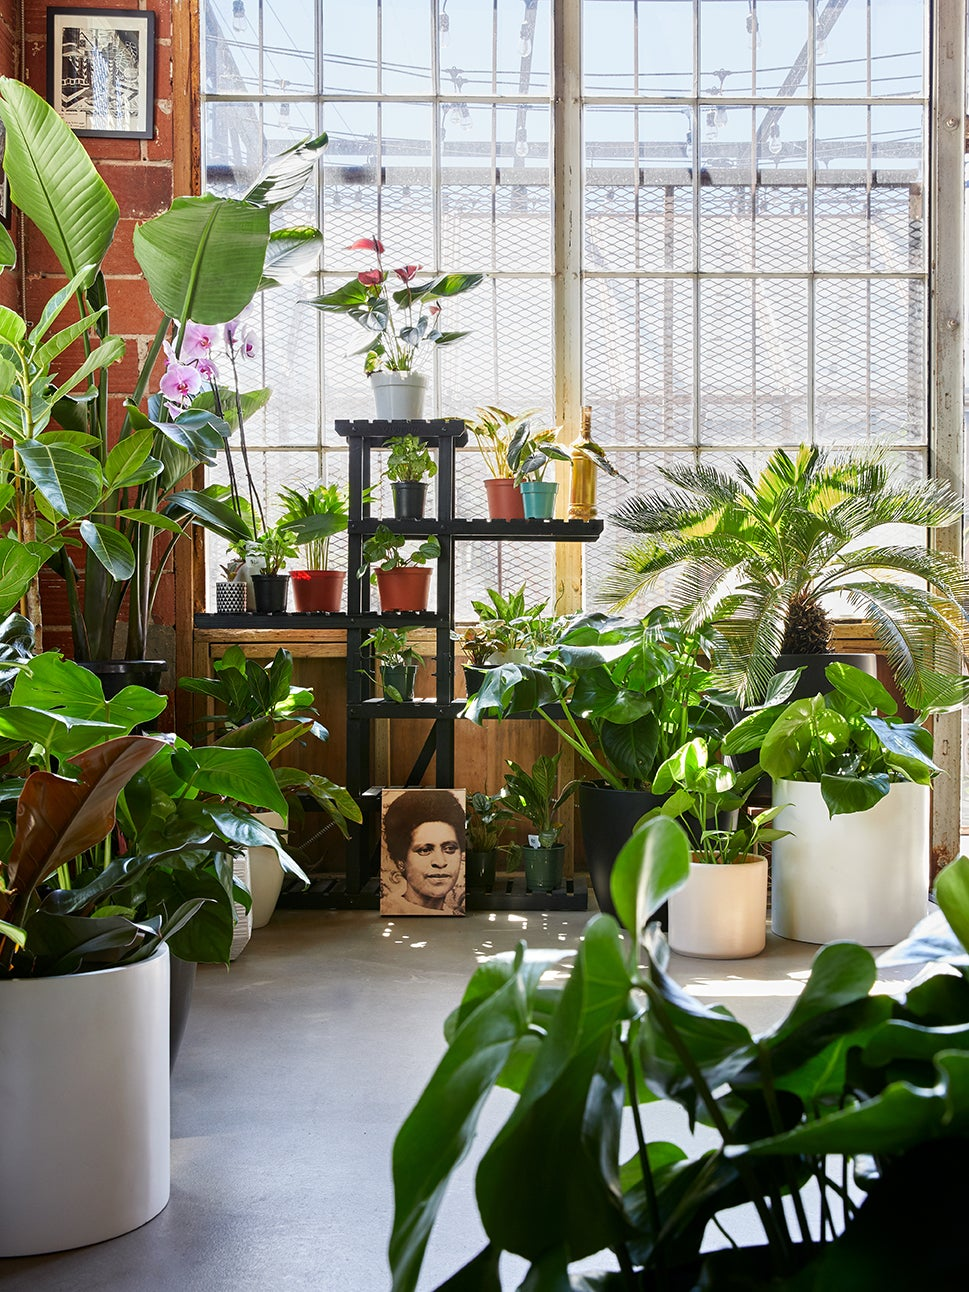 inside garden shop with plants